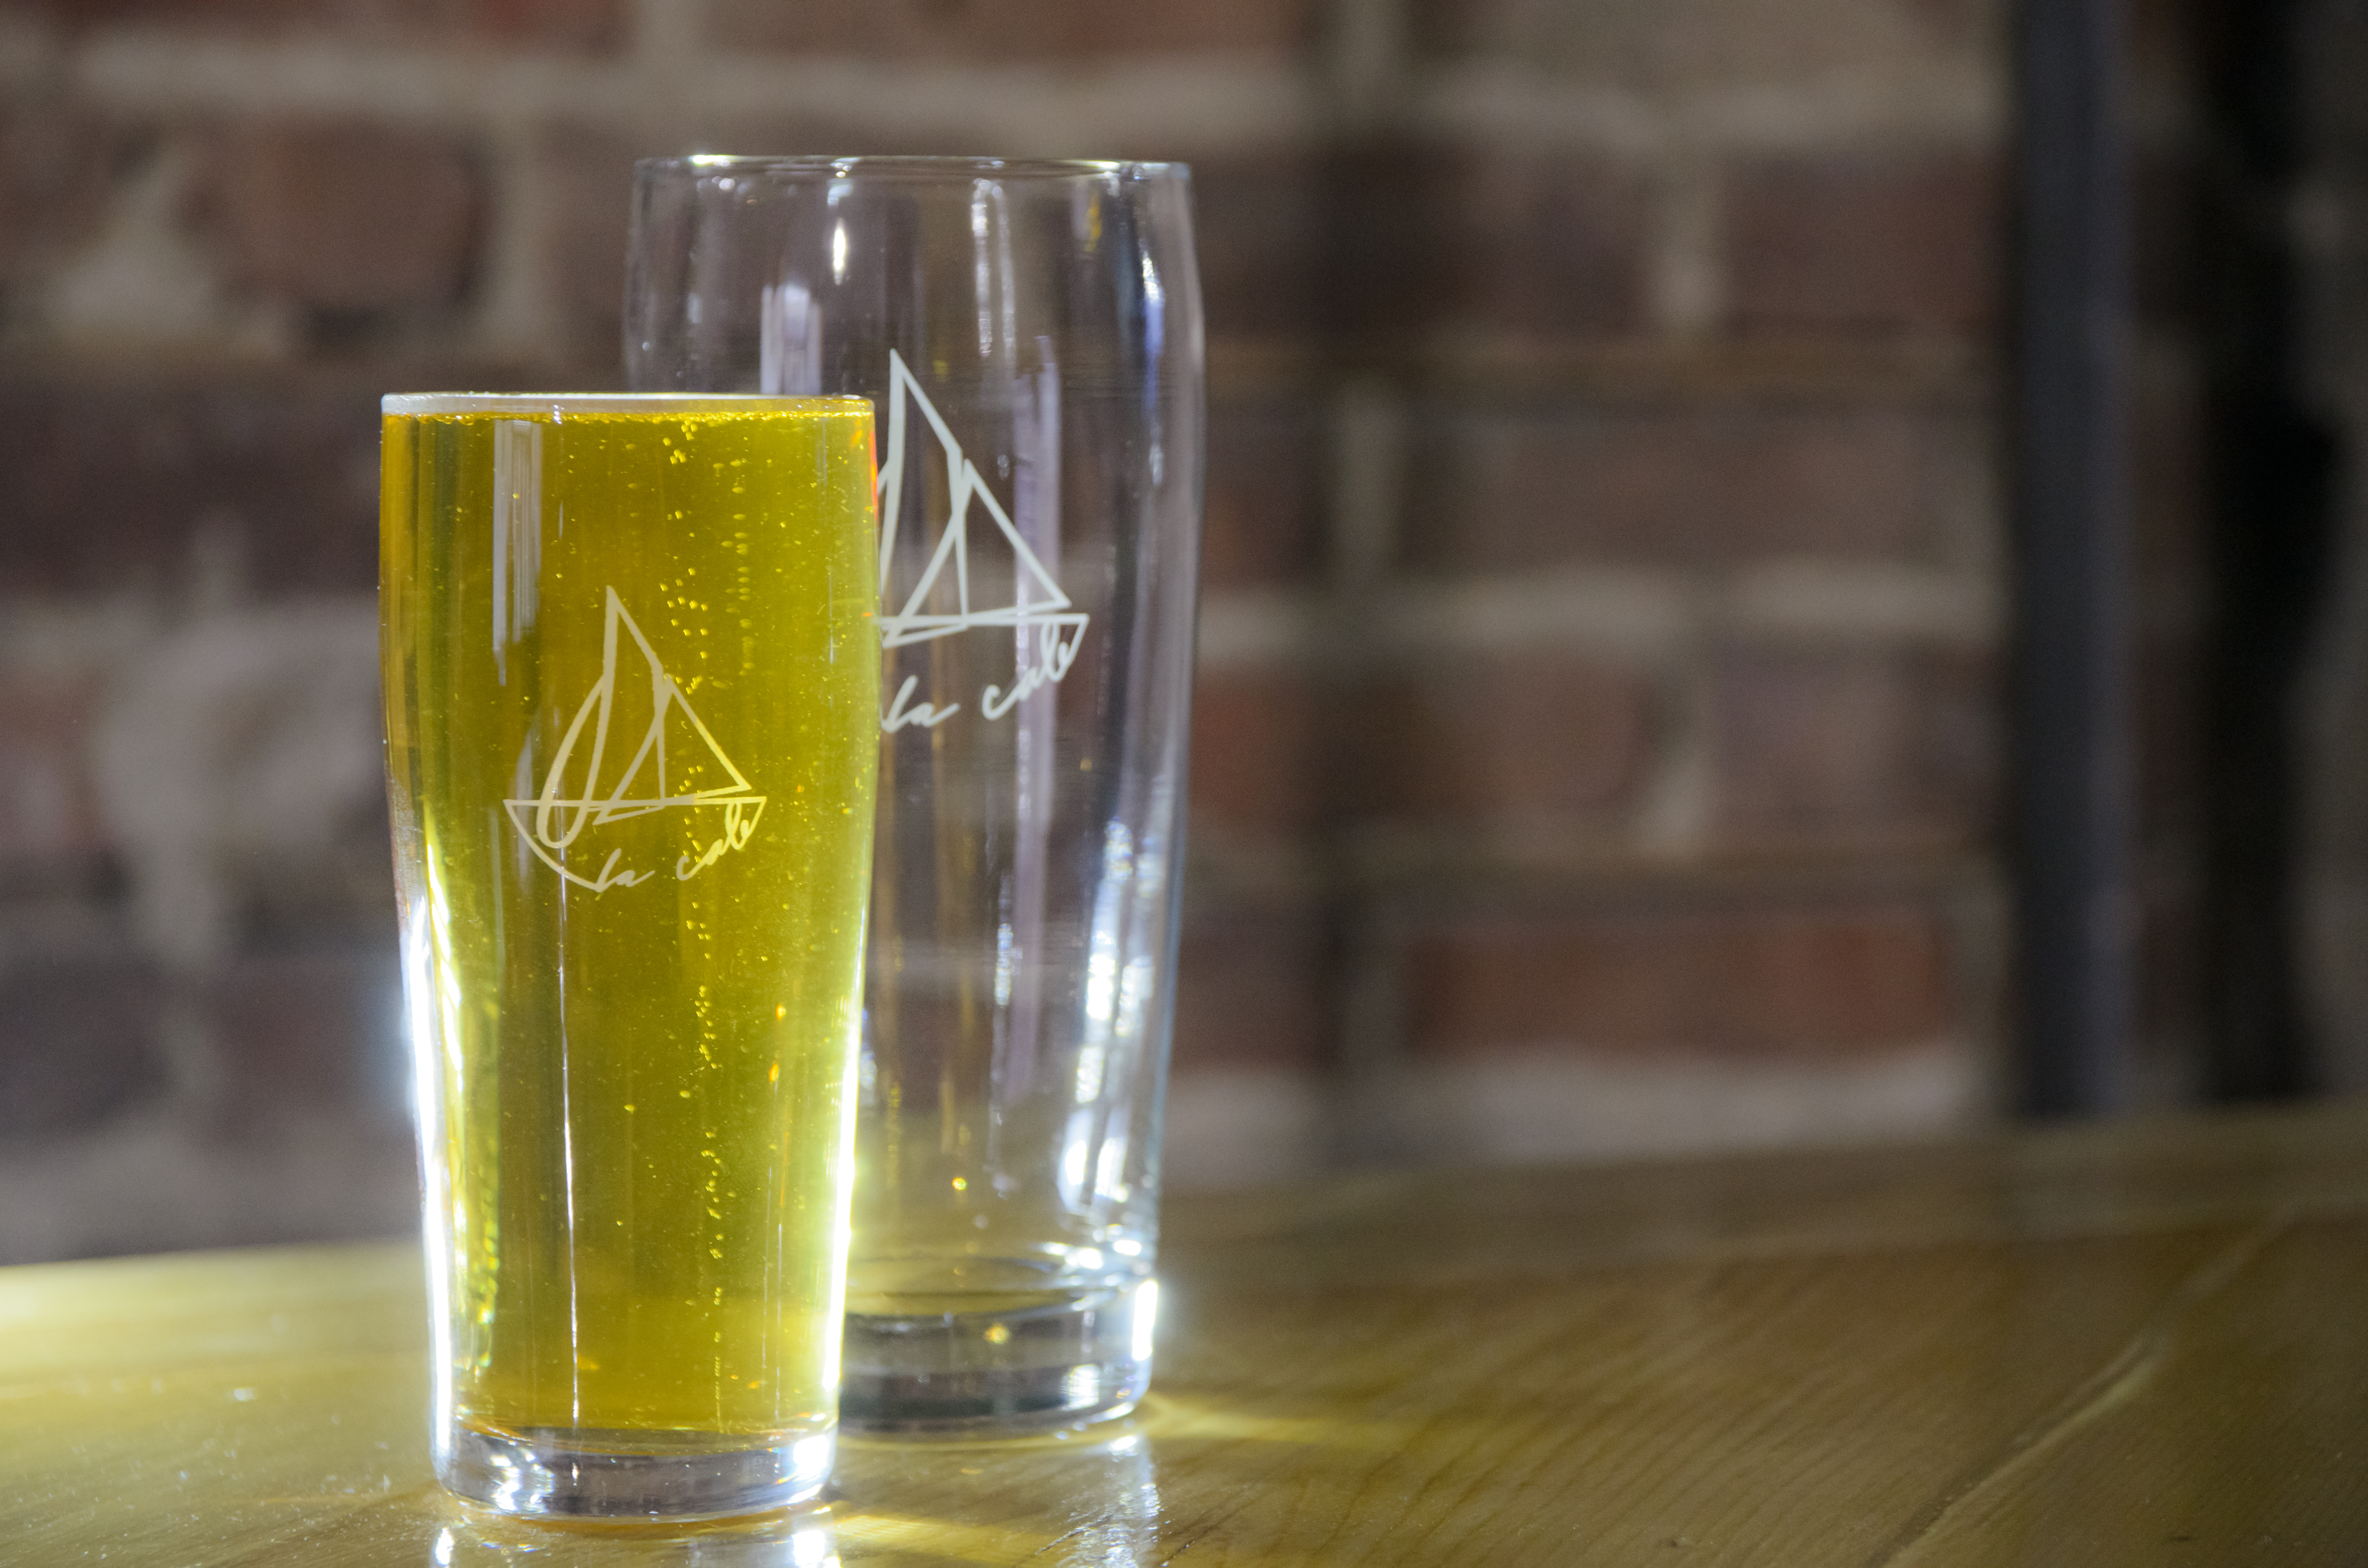 Two glasses with a yacht design on them on a table in front of a brick background.